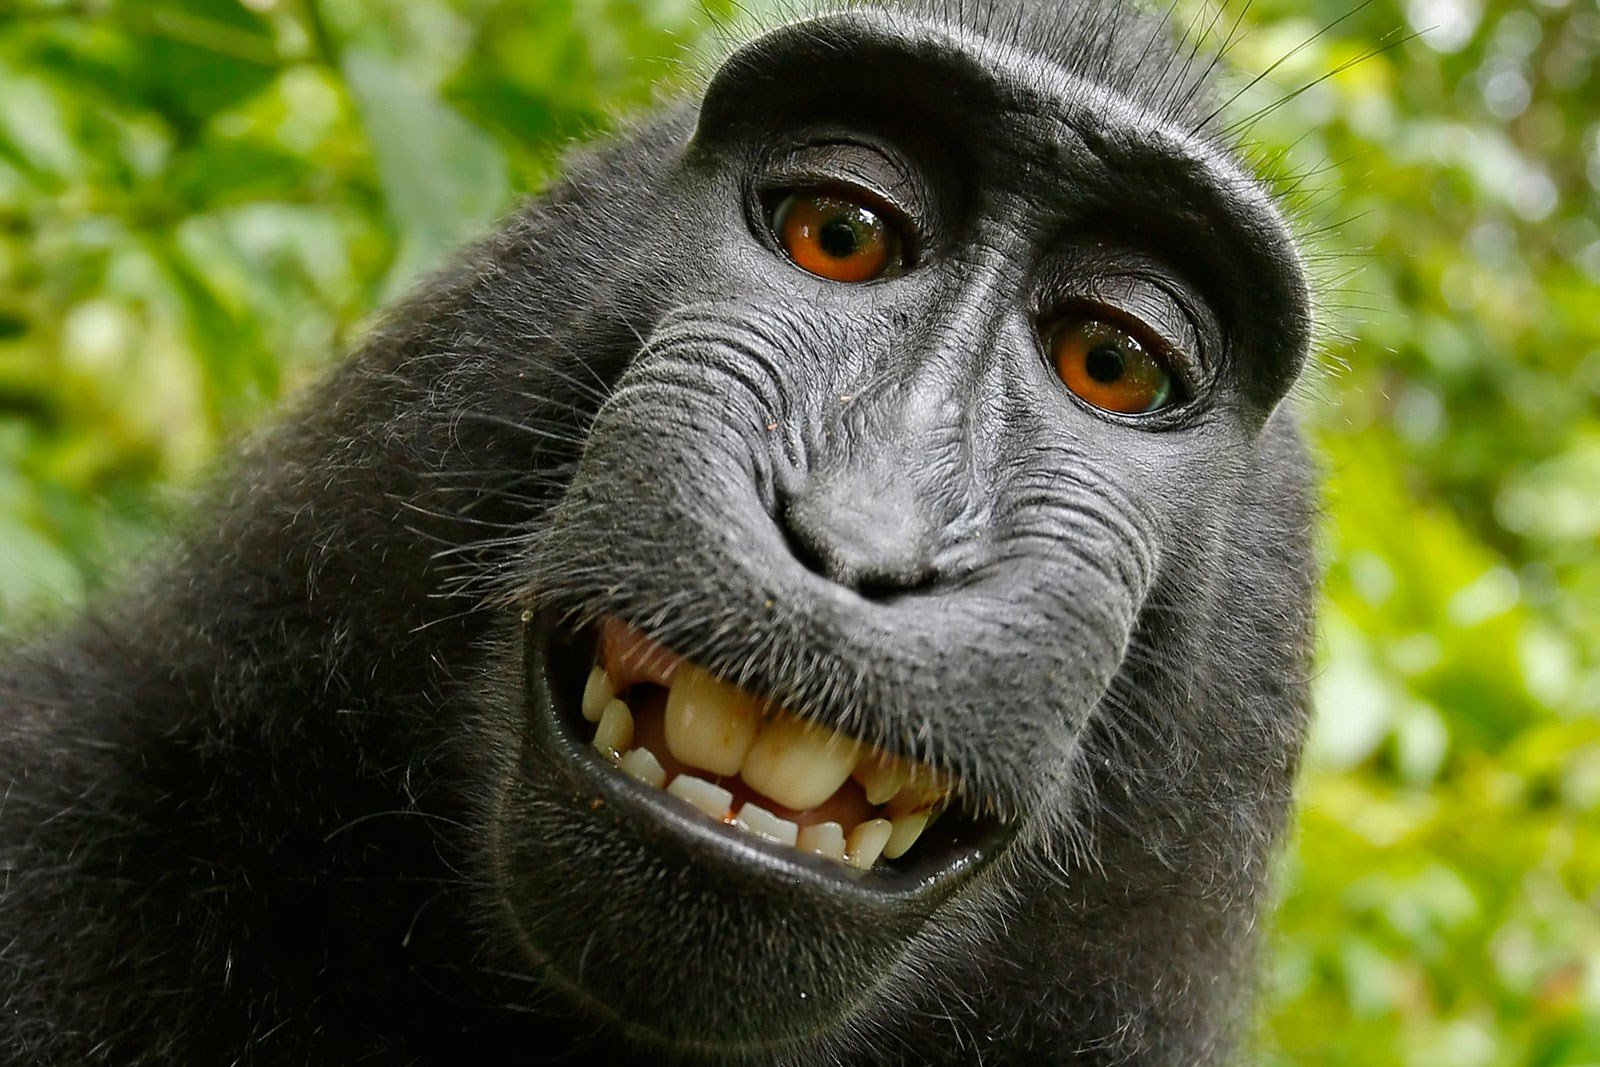 The Lawsuit Over the Monkey That Took a Selfie Is Finally Settled